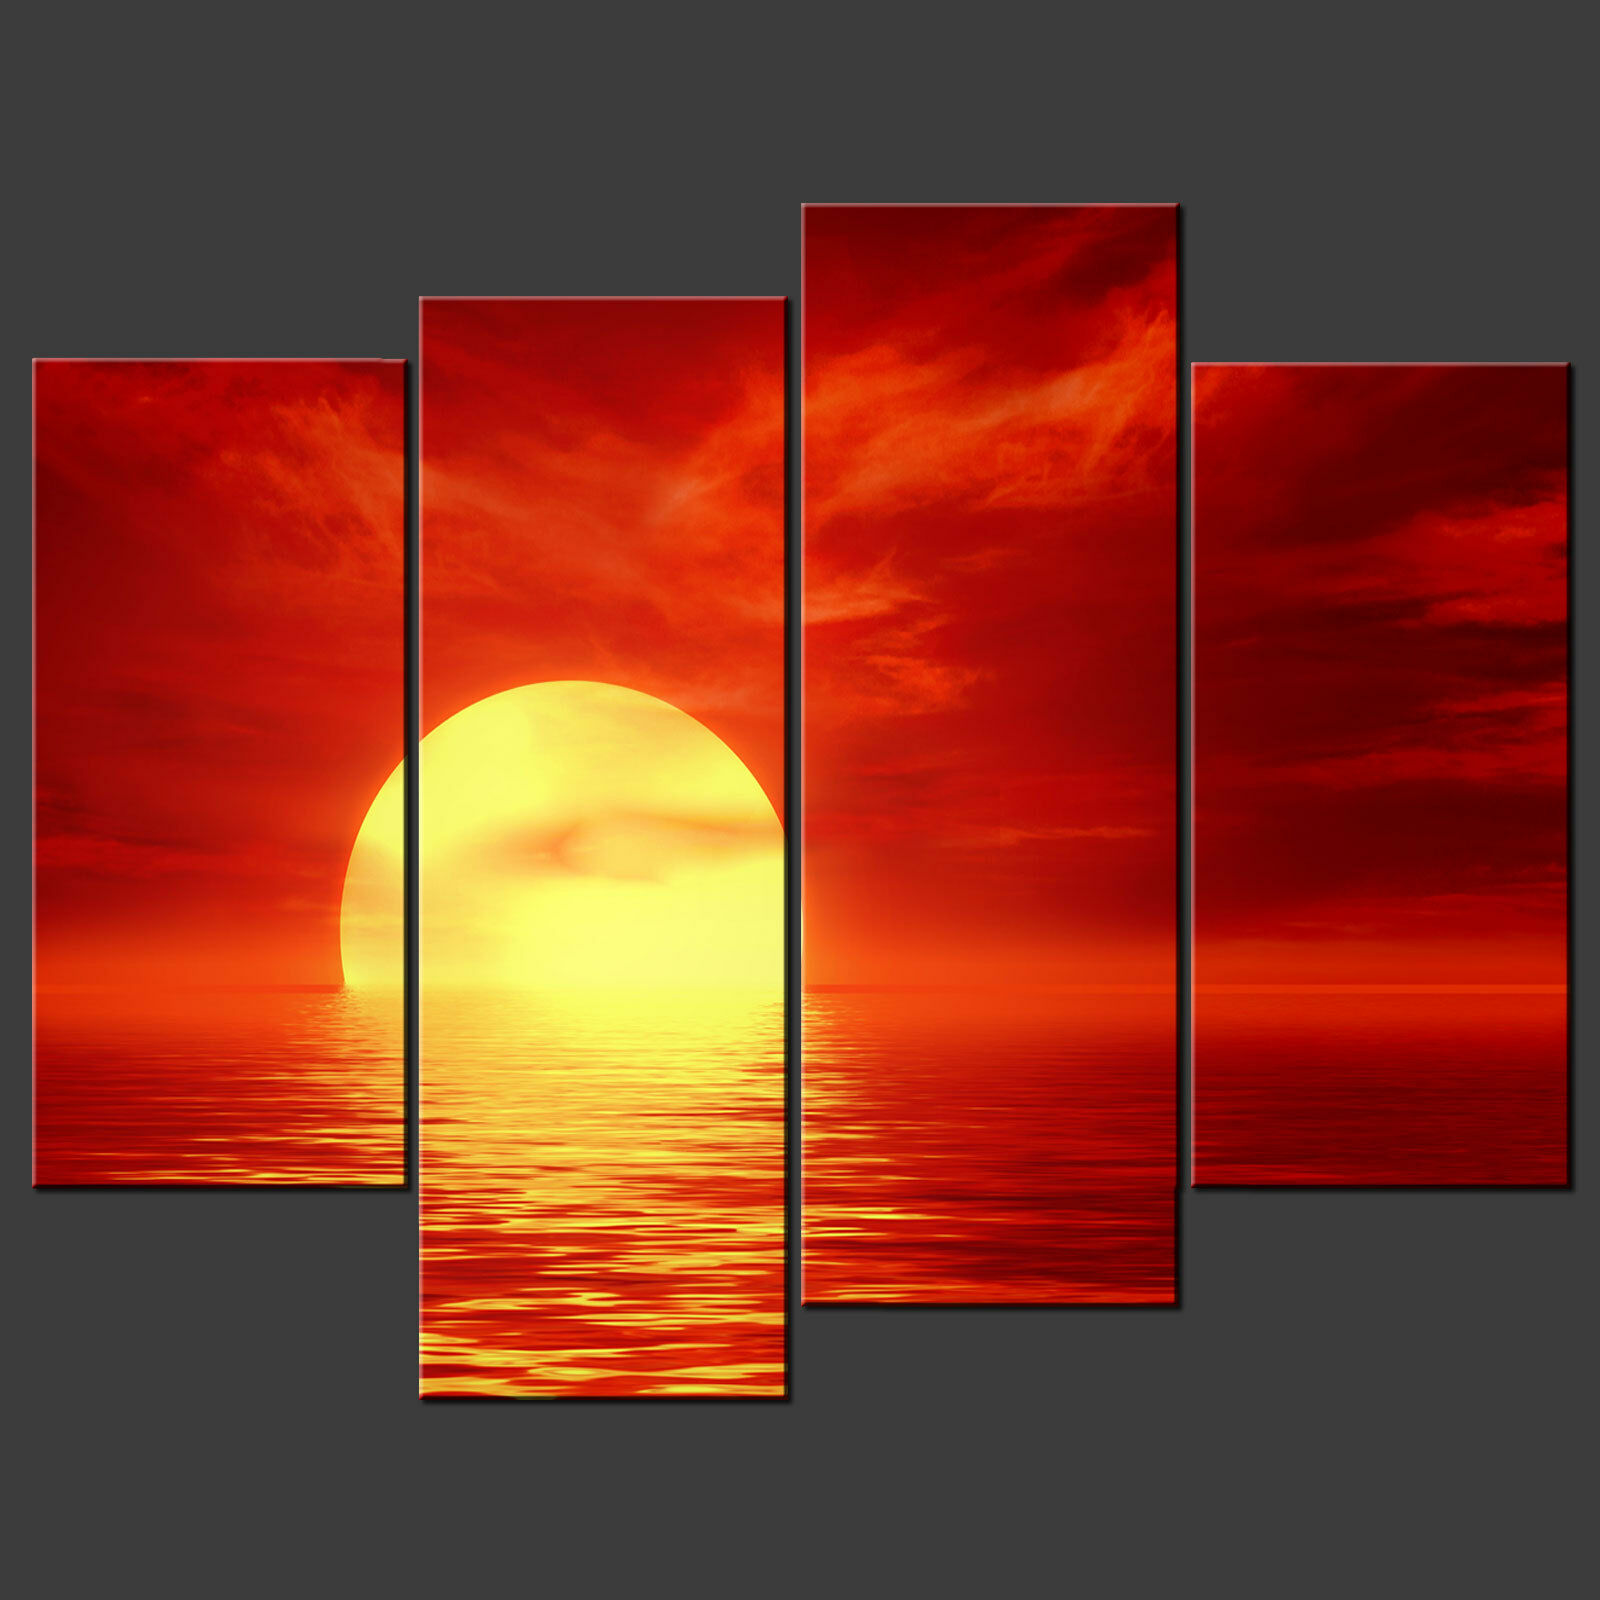 rot ABSTRACT ABSTRACT ABSTRACT SUNSET SPLIT CANVAS WALL ART PICTURES PRINTS LARGER GrößeS AVAILABLE cfd461